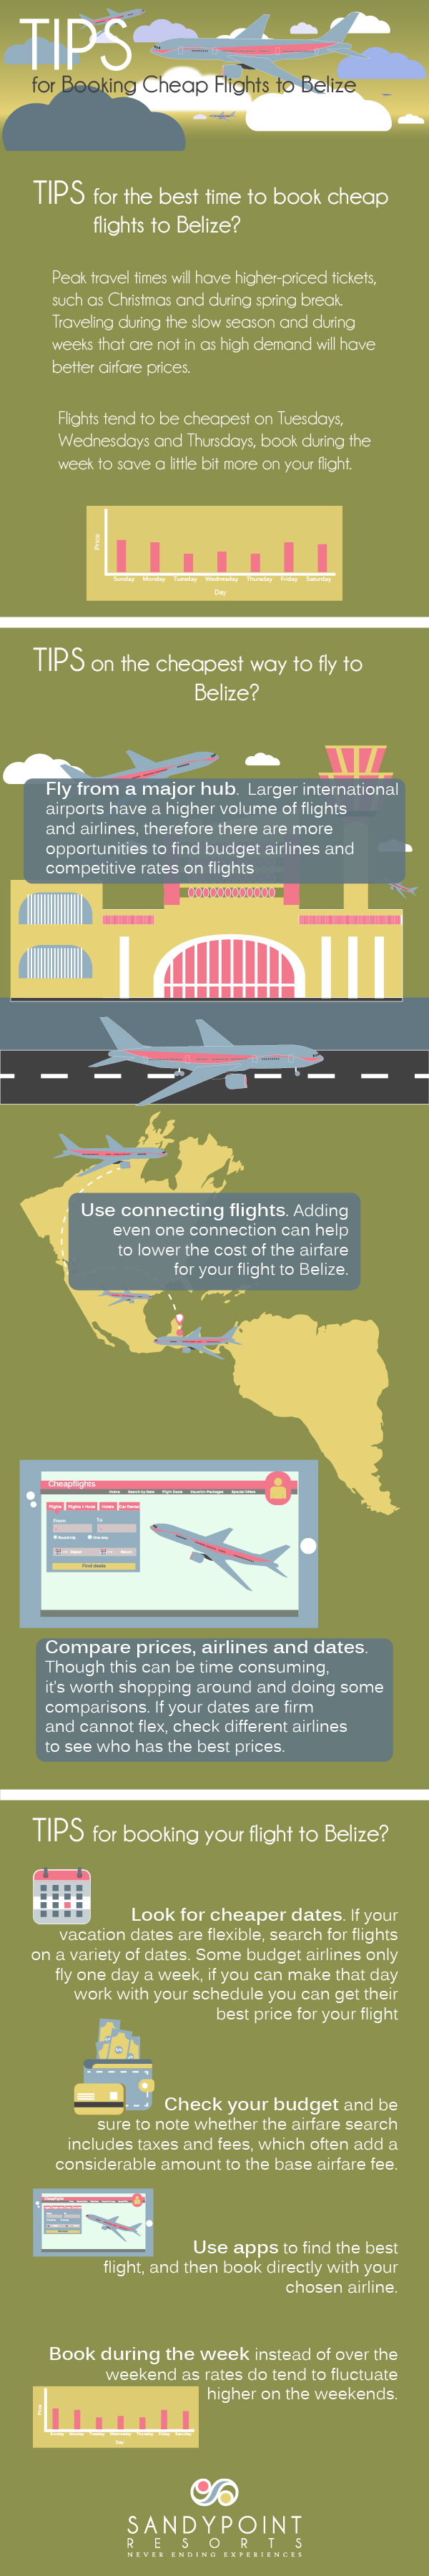 Tips for booking cheap flight to Belize